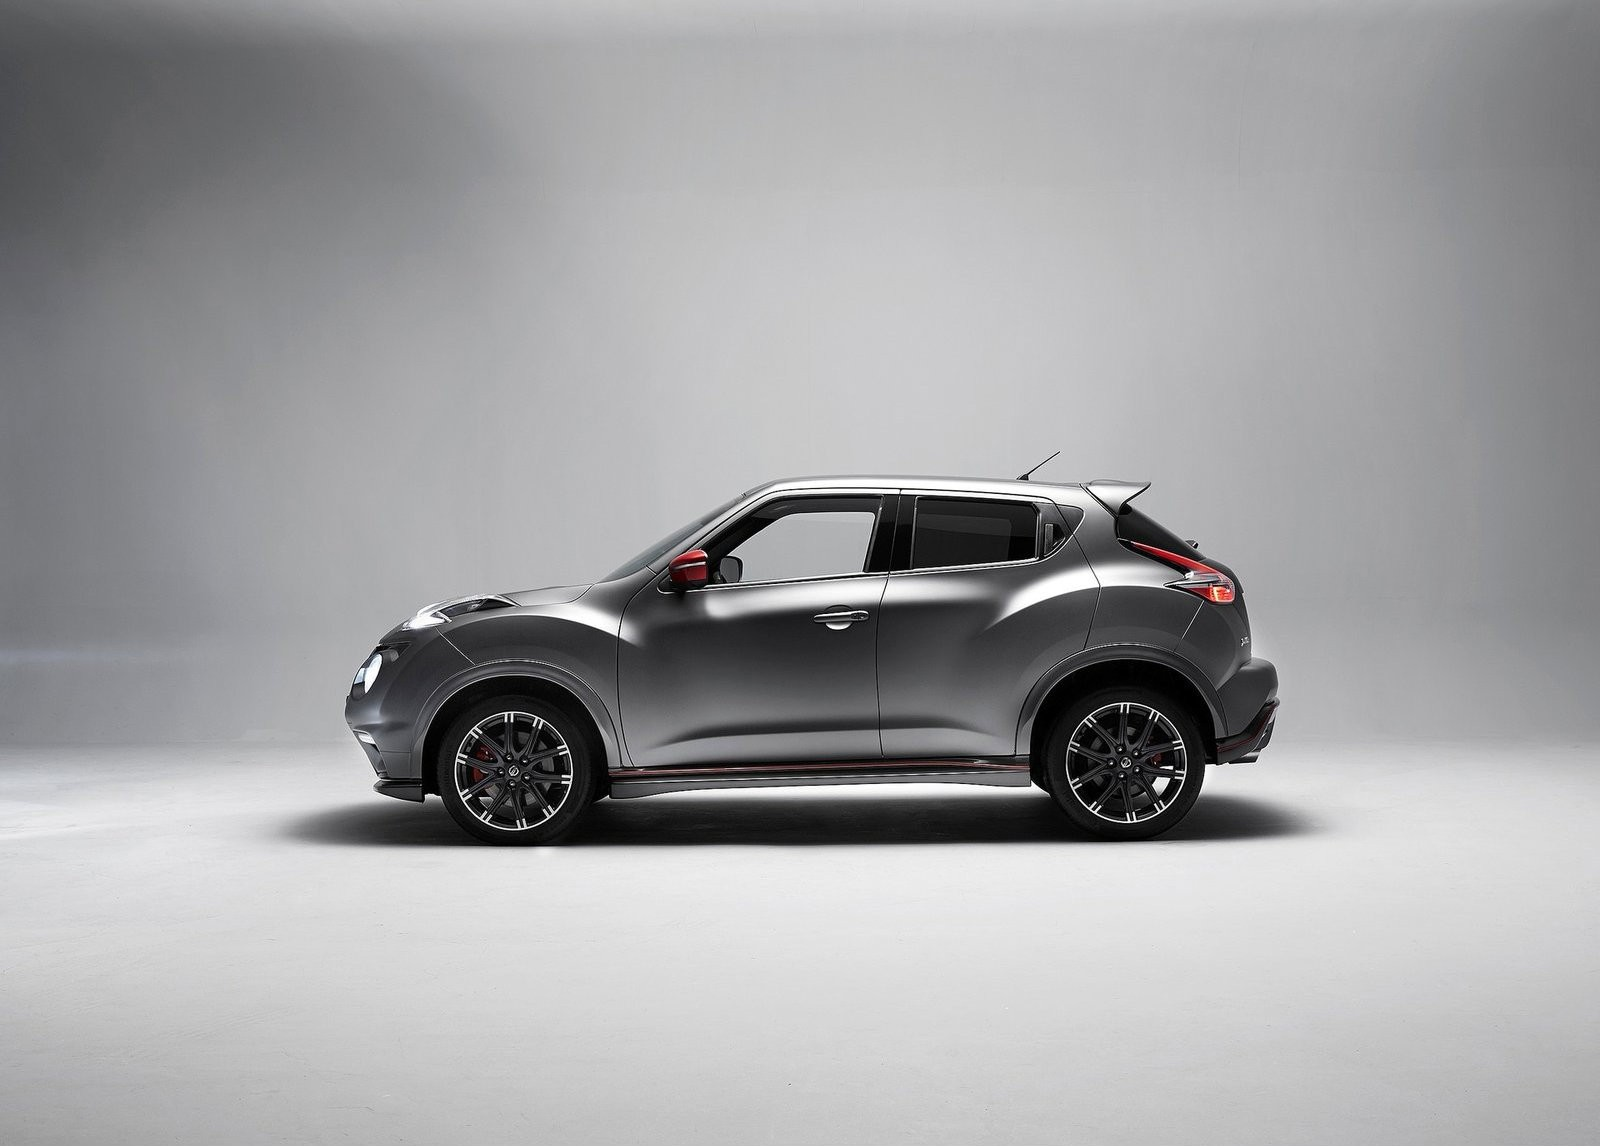 2016 Nissan Juke Nismo >> 2017 Nissan Juke Priced in the U.S. from $20,250 - autoevolution